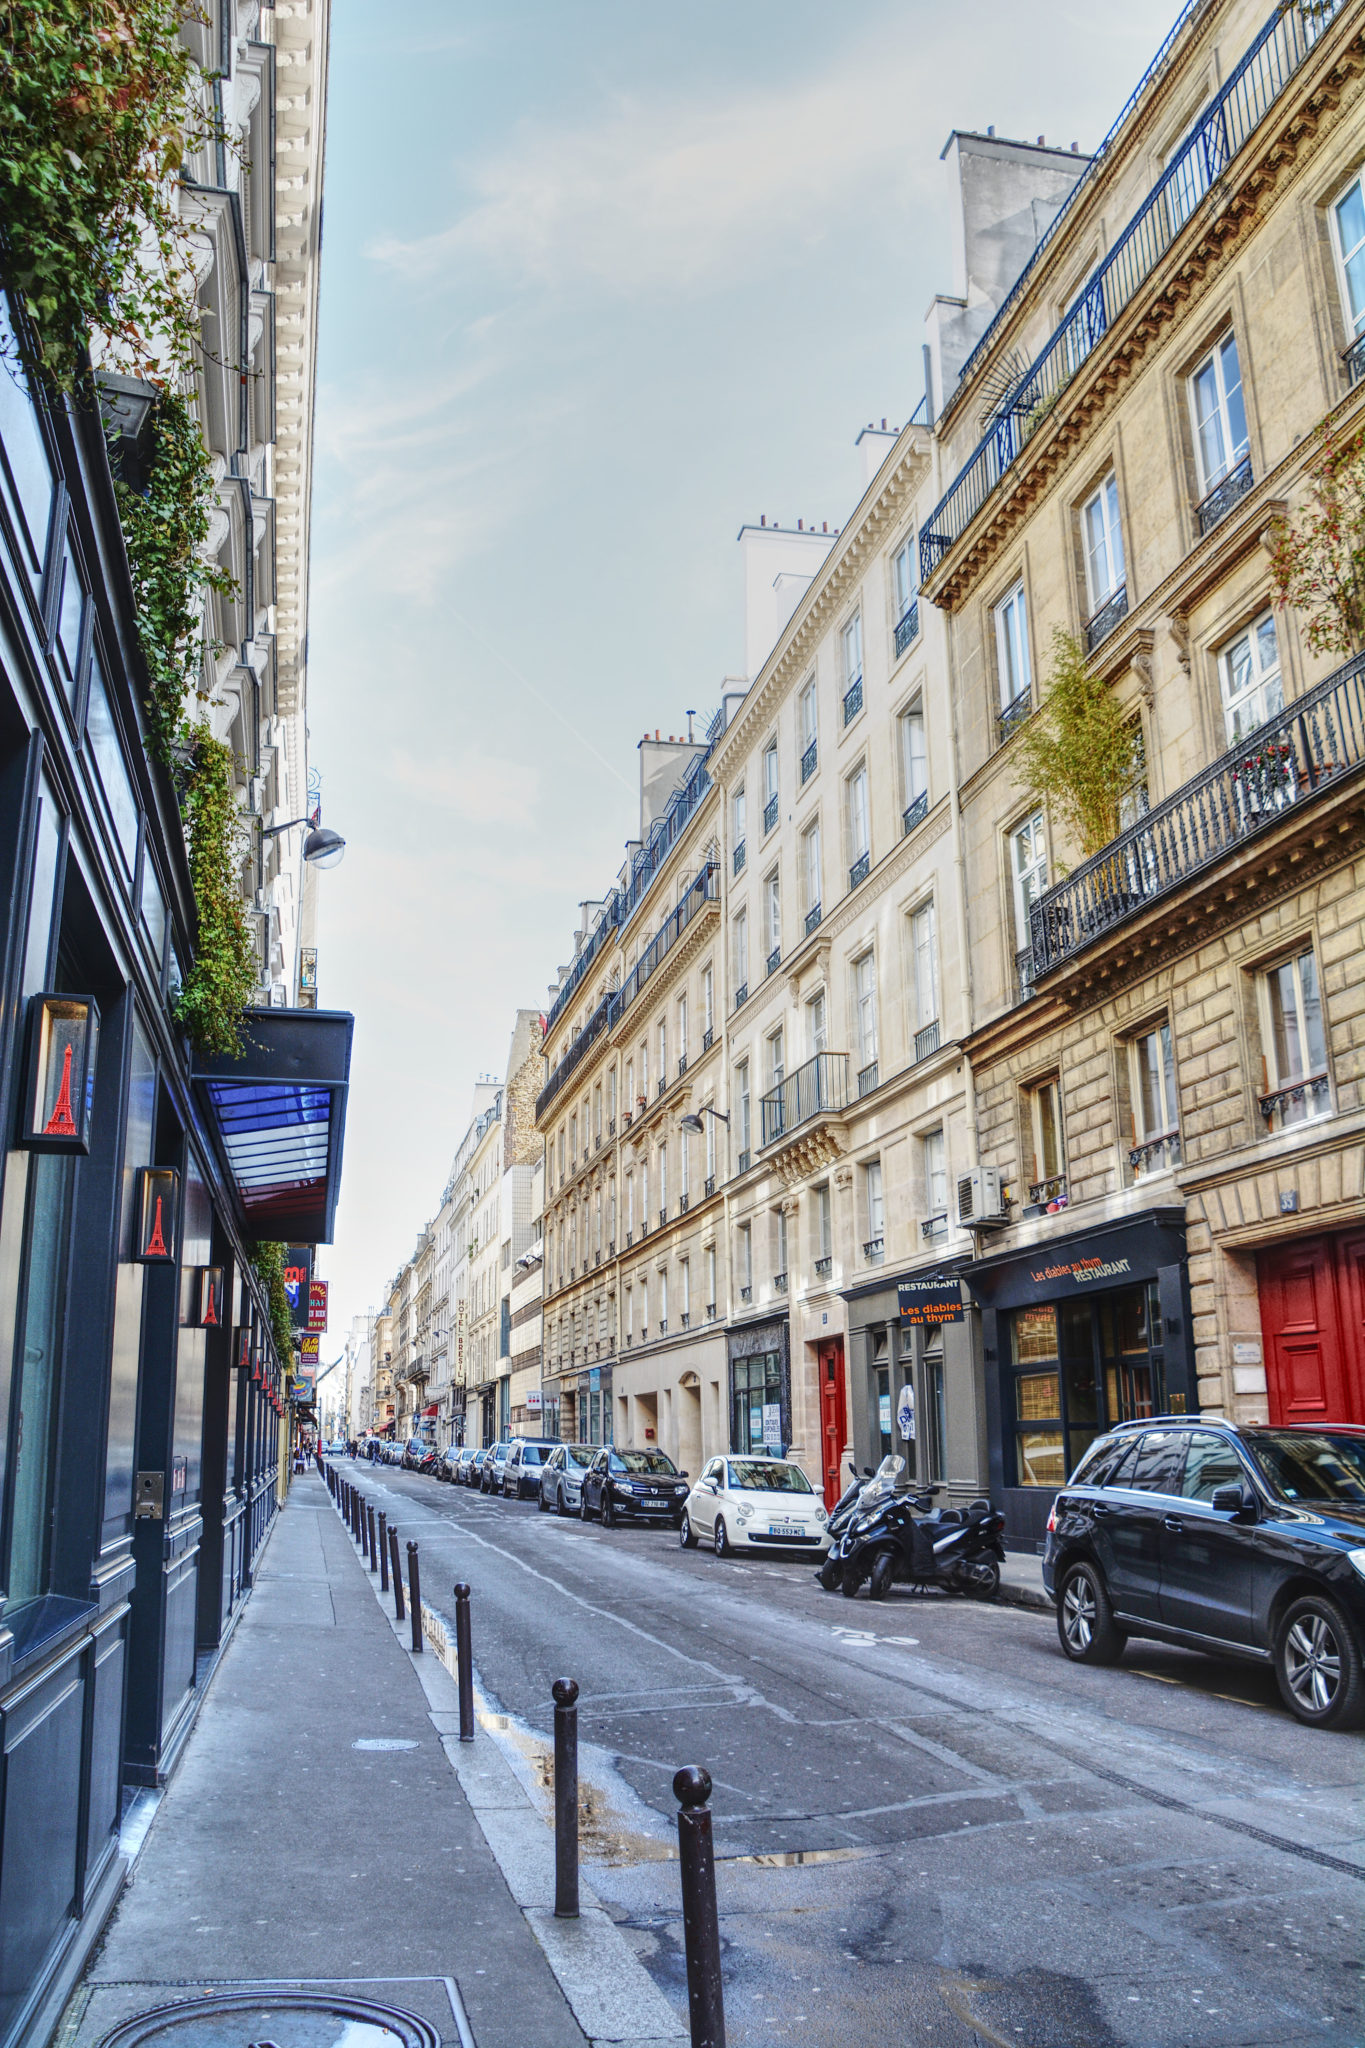 Paris For The First Time Things I Loved Most In A Nutshell - 8 things to see and do in southern france